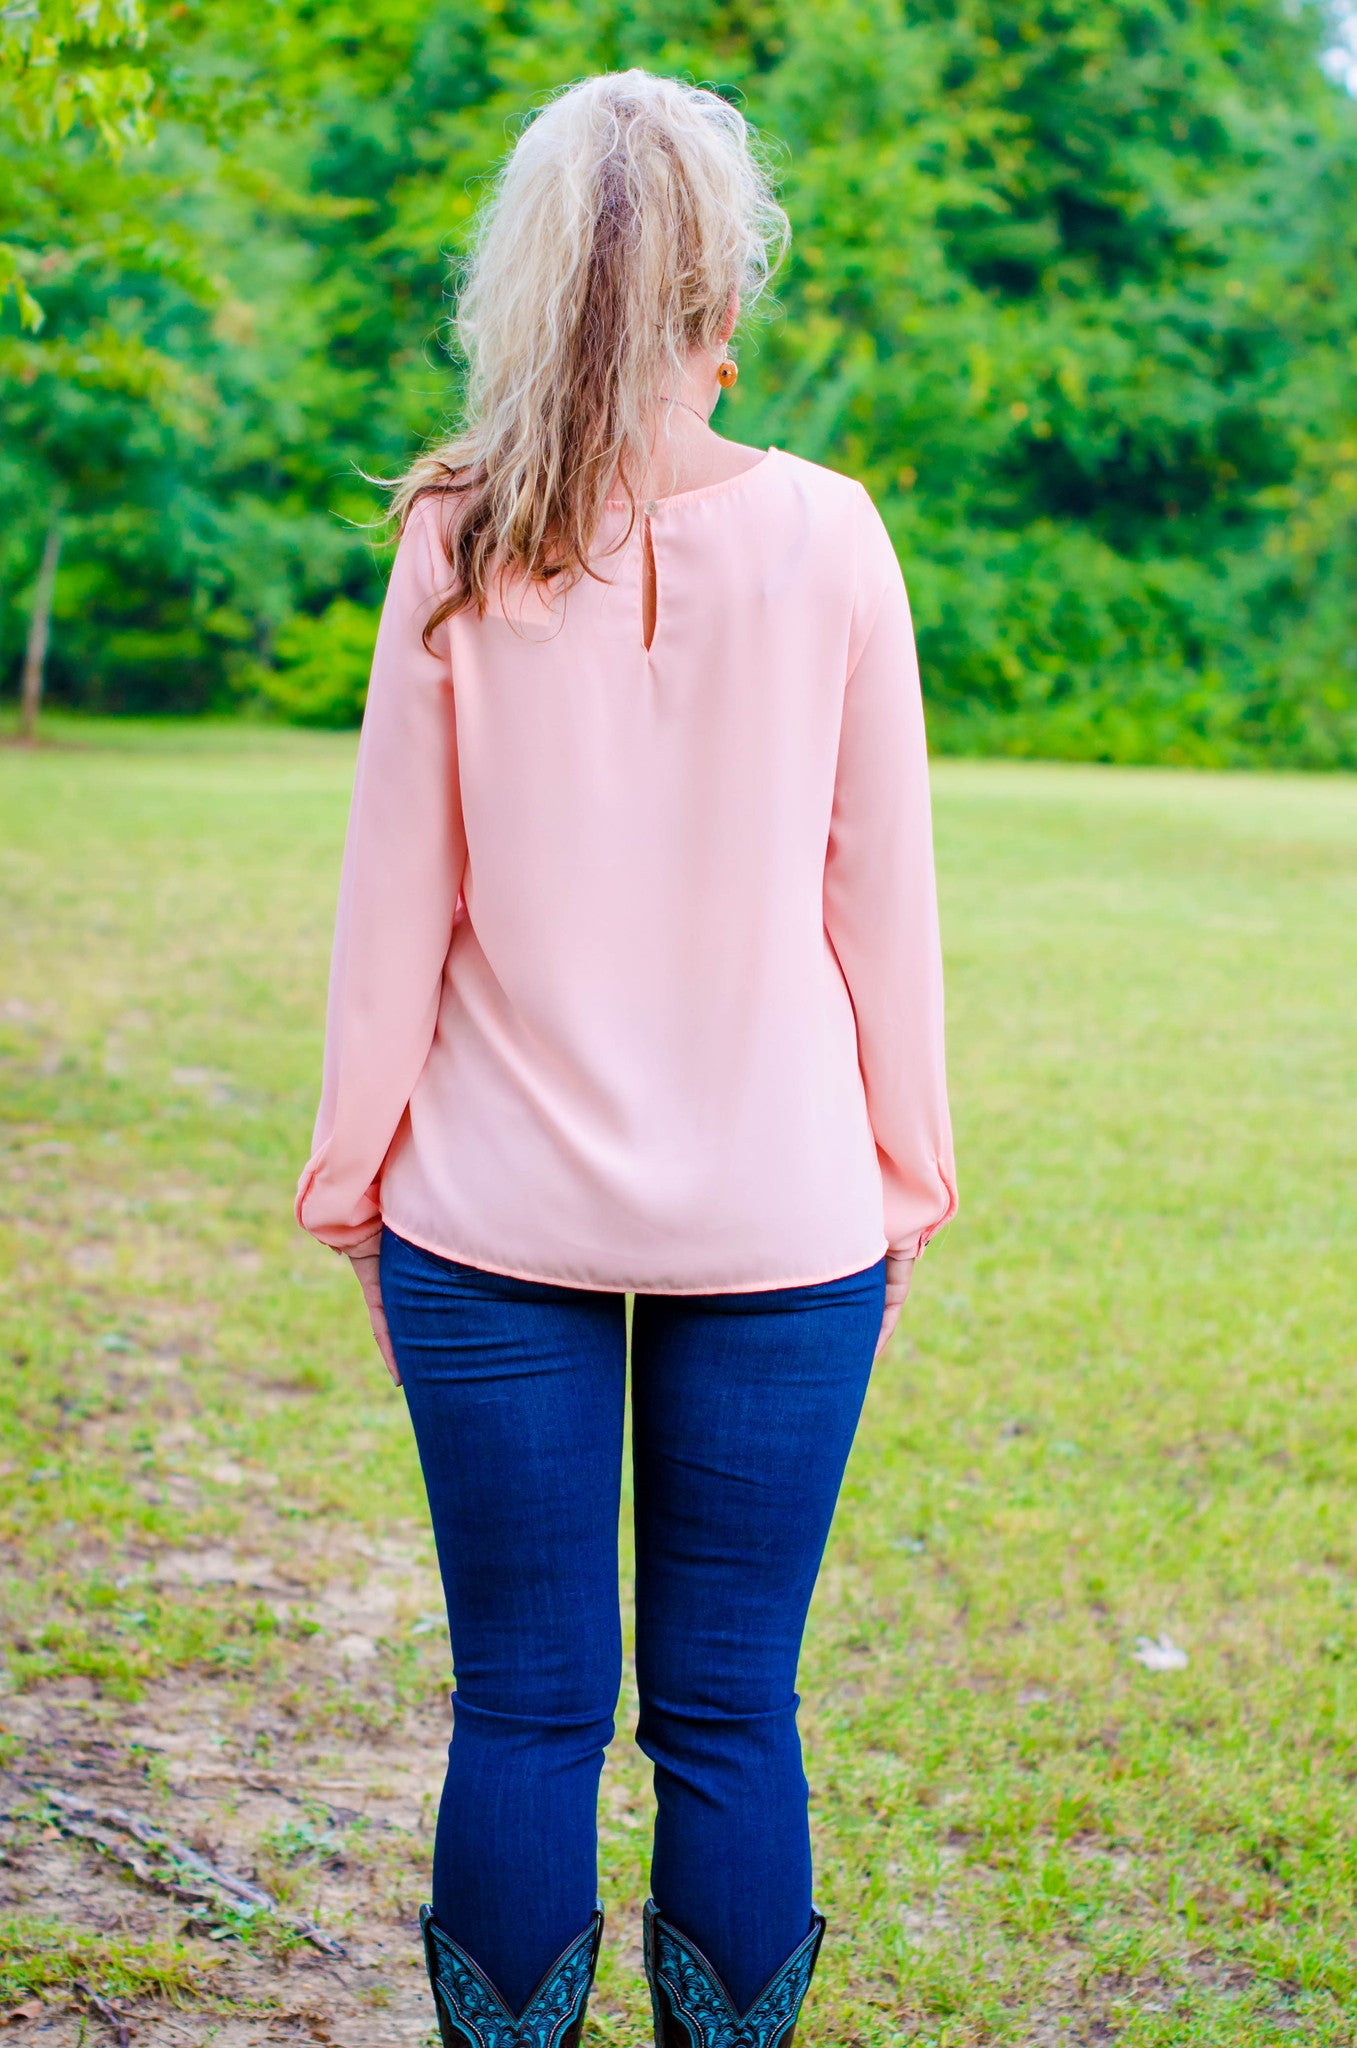 Glam: Tia Top, Peach